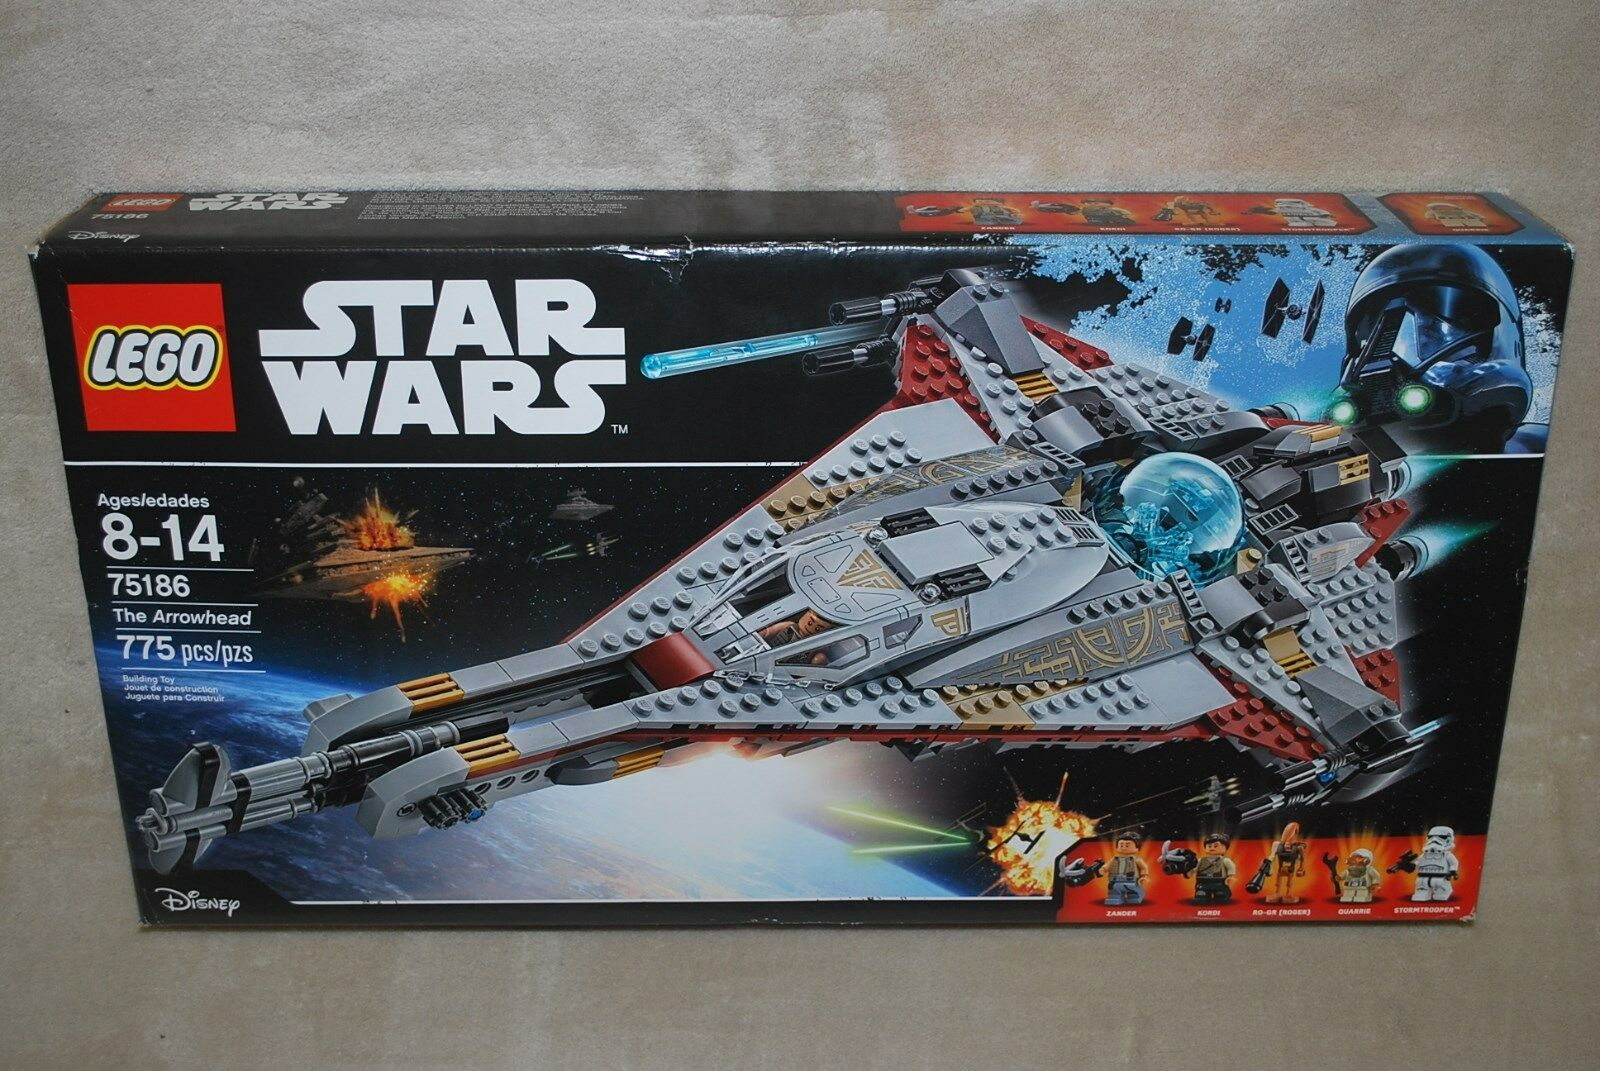 LEGO New 75186 Star Wars The Arrowhead Factory Sealed Box NISB